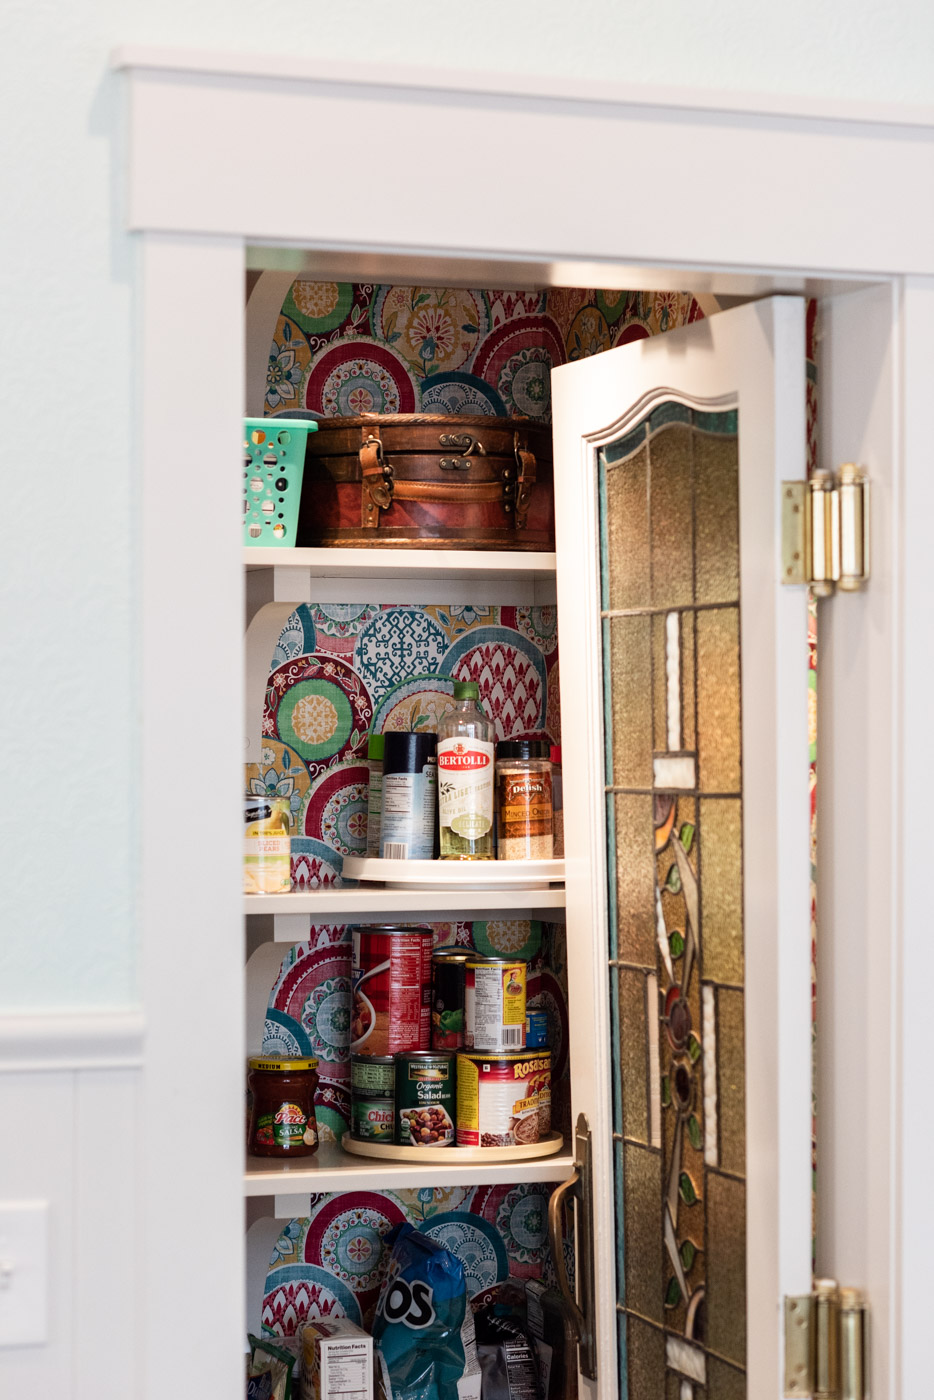 Eclectic Country Craftsman kitchen with custom blue painted cabinets and pantry shelving